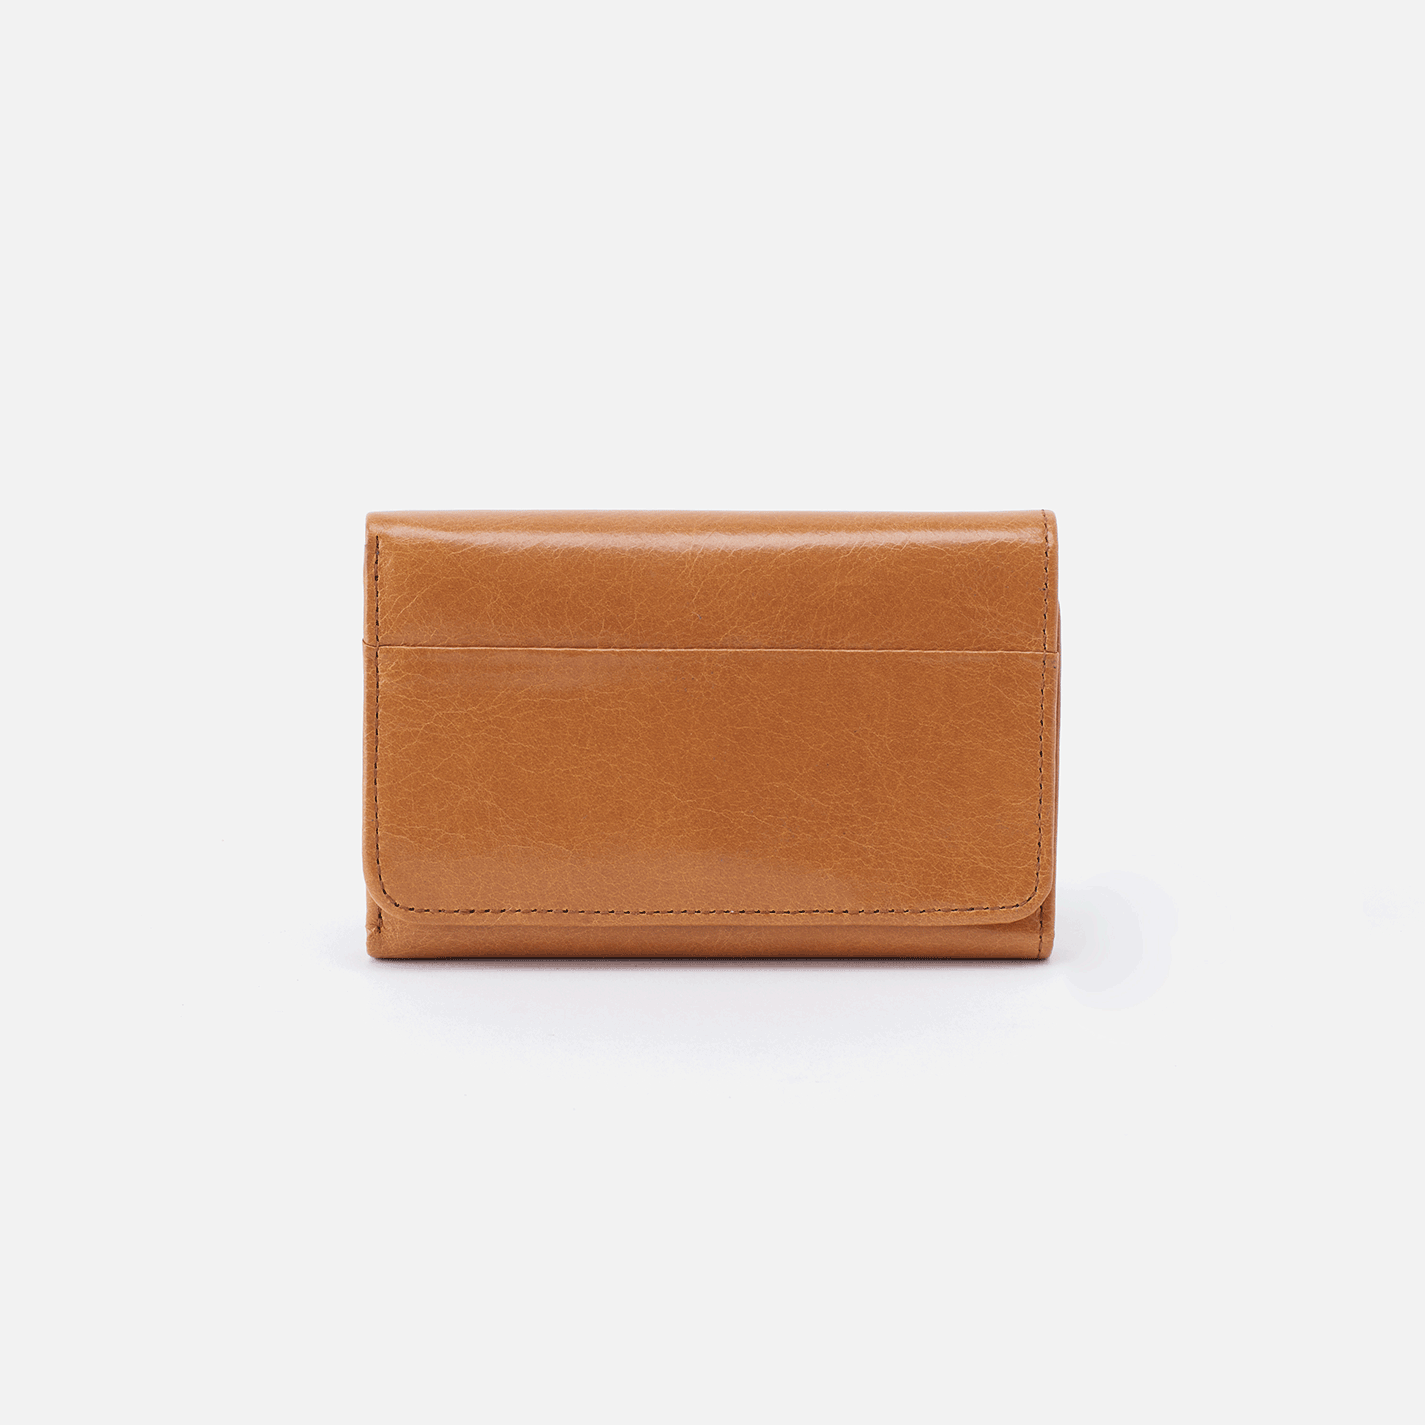 Hobo Jill Wallet - Honey